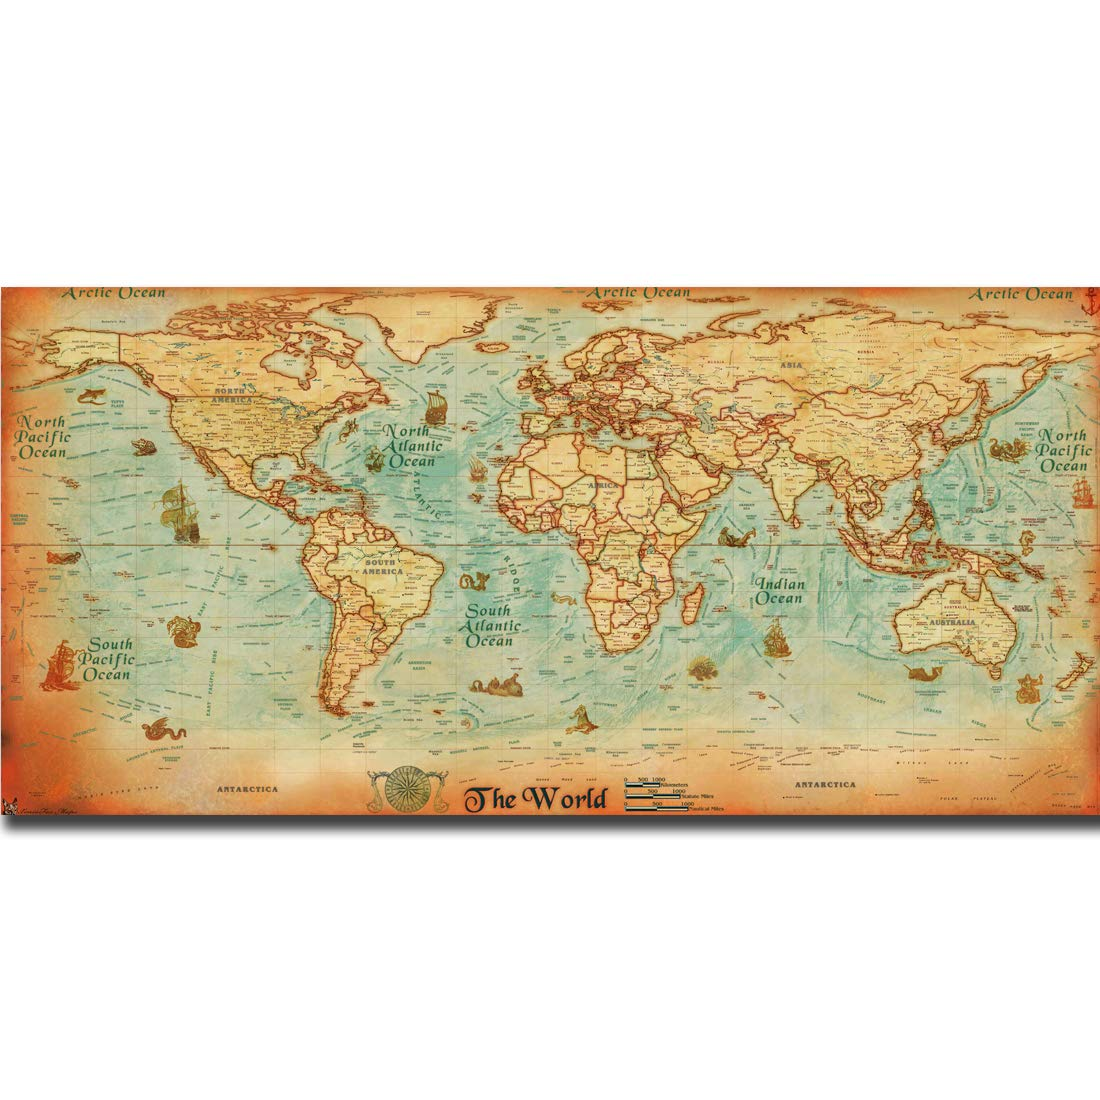 Large Vintage Map Of The World.Amazon Com The Old World Map Large Vintage Style Retro Paper Poster